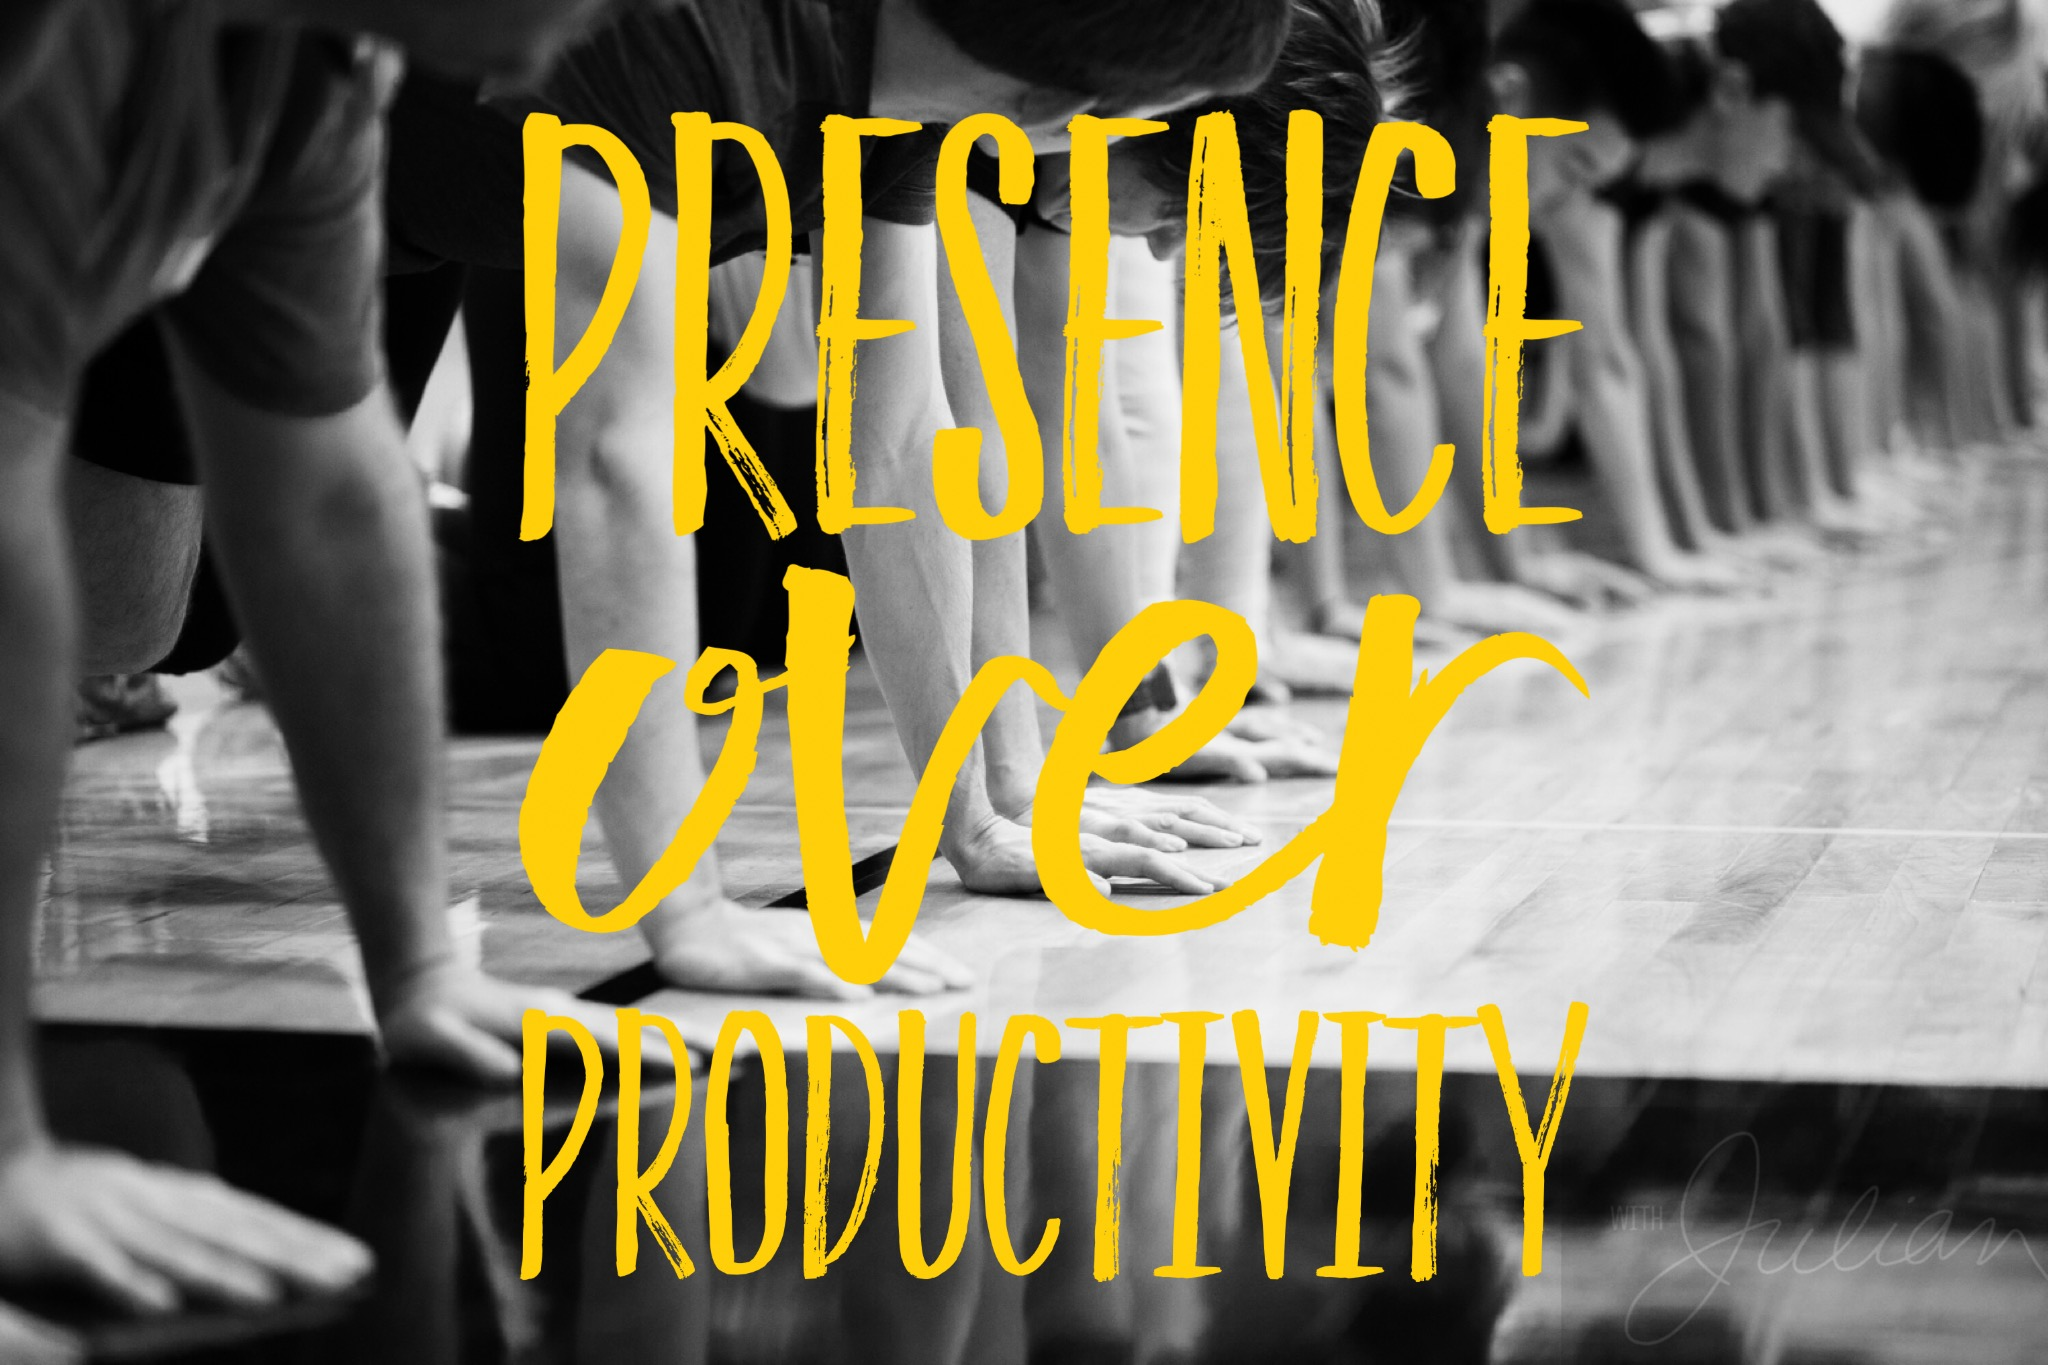 PRESENCE OVER PRODUCTIVITY   Simply put, being present is being productive. Focus deeply on one thing at a time, rather than a million things at once. When our attention is channeled and present, we unlock our most productive mental states: flow, mindfulness, self-awareness, proprioception, and peace of mind.